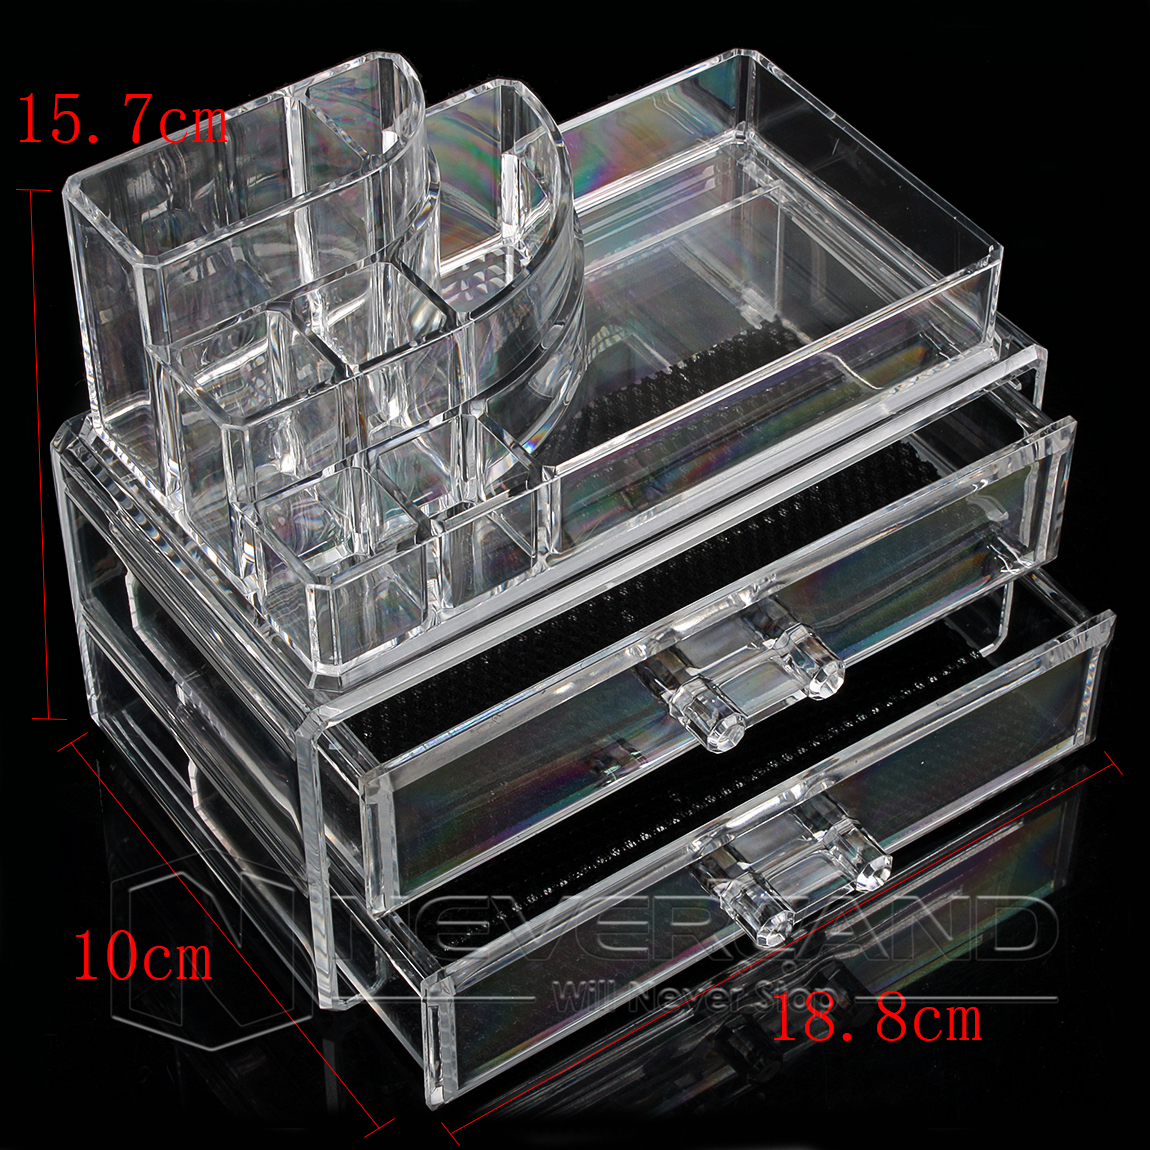 acryl kosmetik organizer mit schublade aufbewahrung make up ordnungsst nder ebay. Black Bedroom Furniture Sets. Home Design Ideas